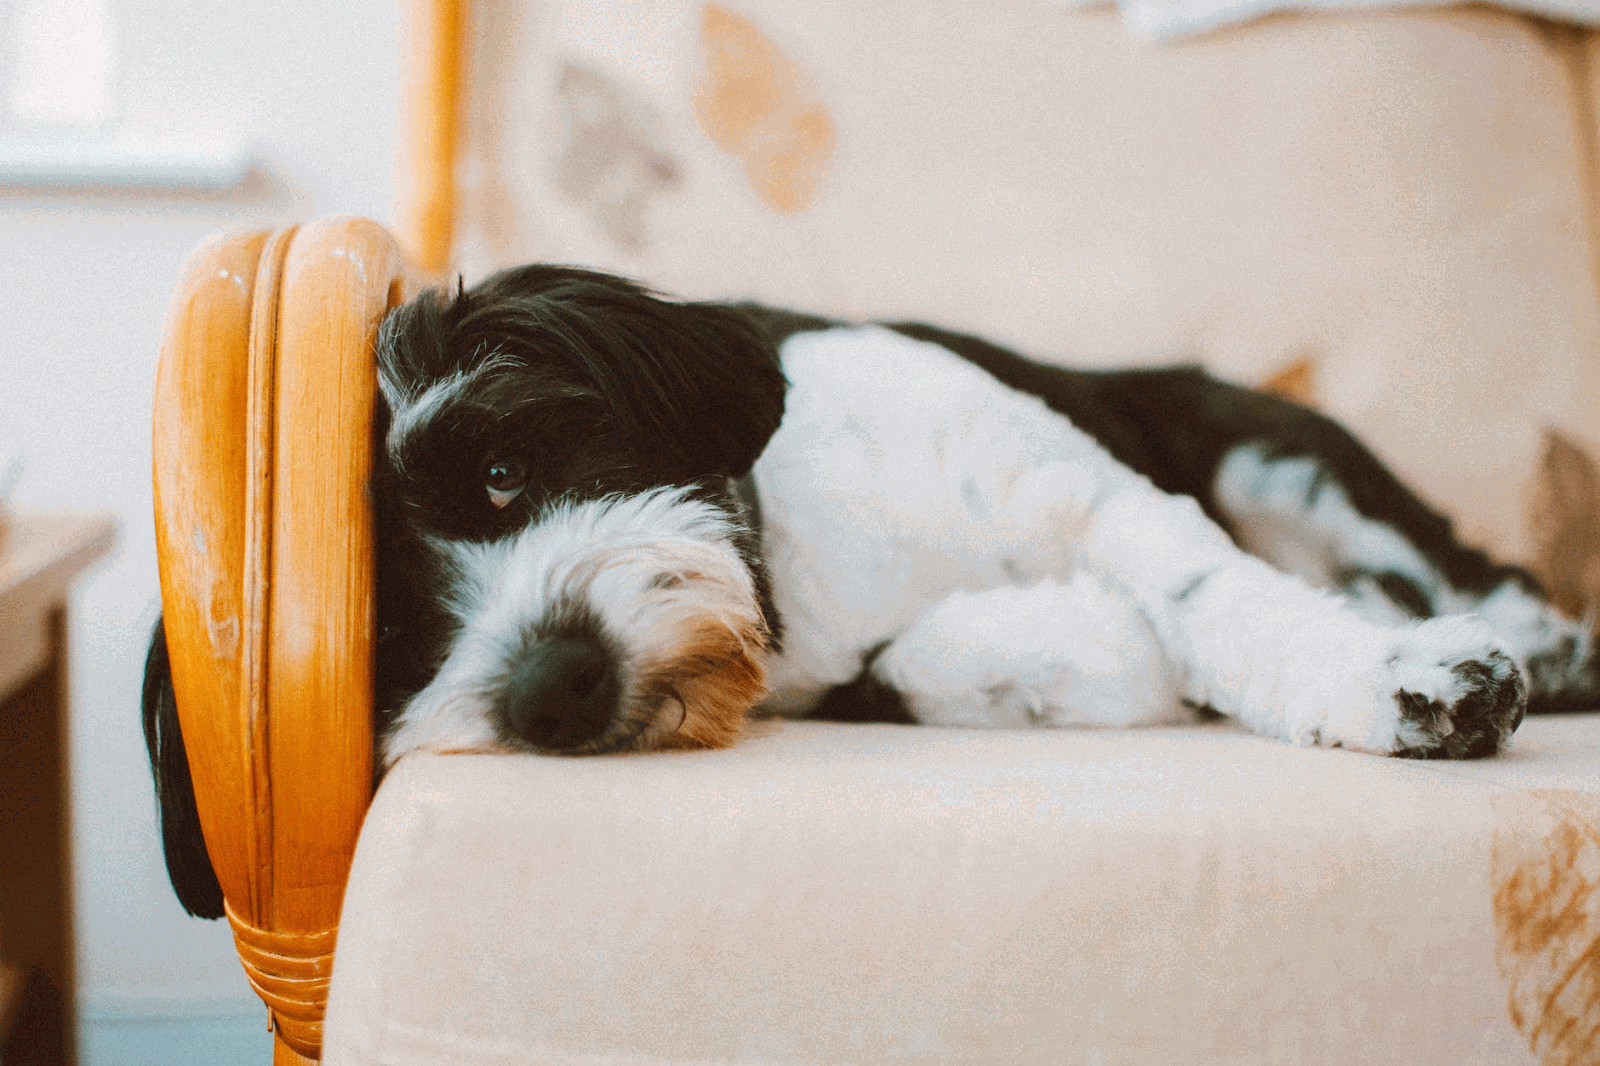 Black and White Dog Laying on a Chair Looking Sleepy